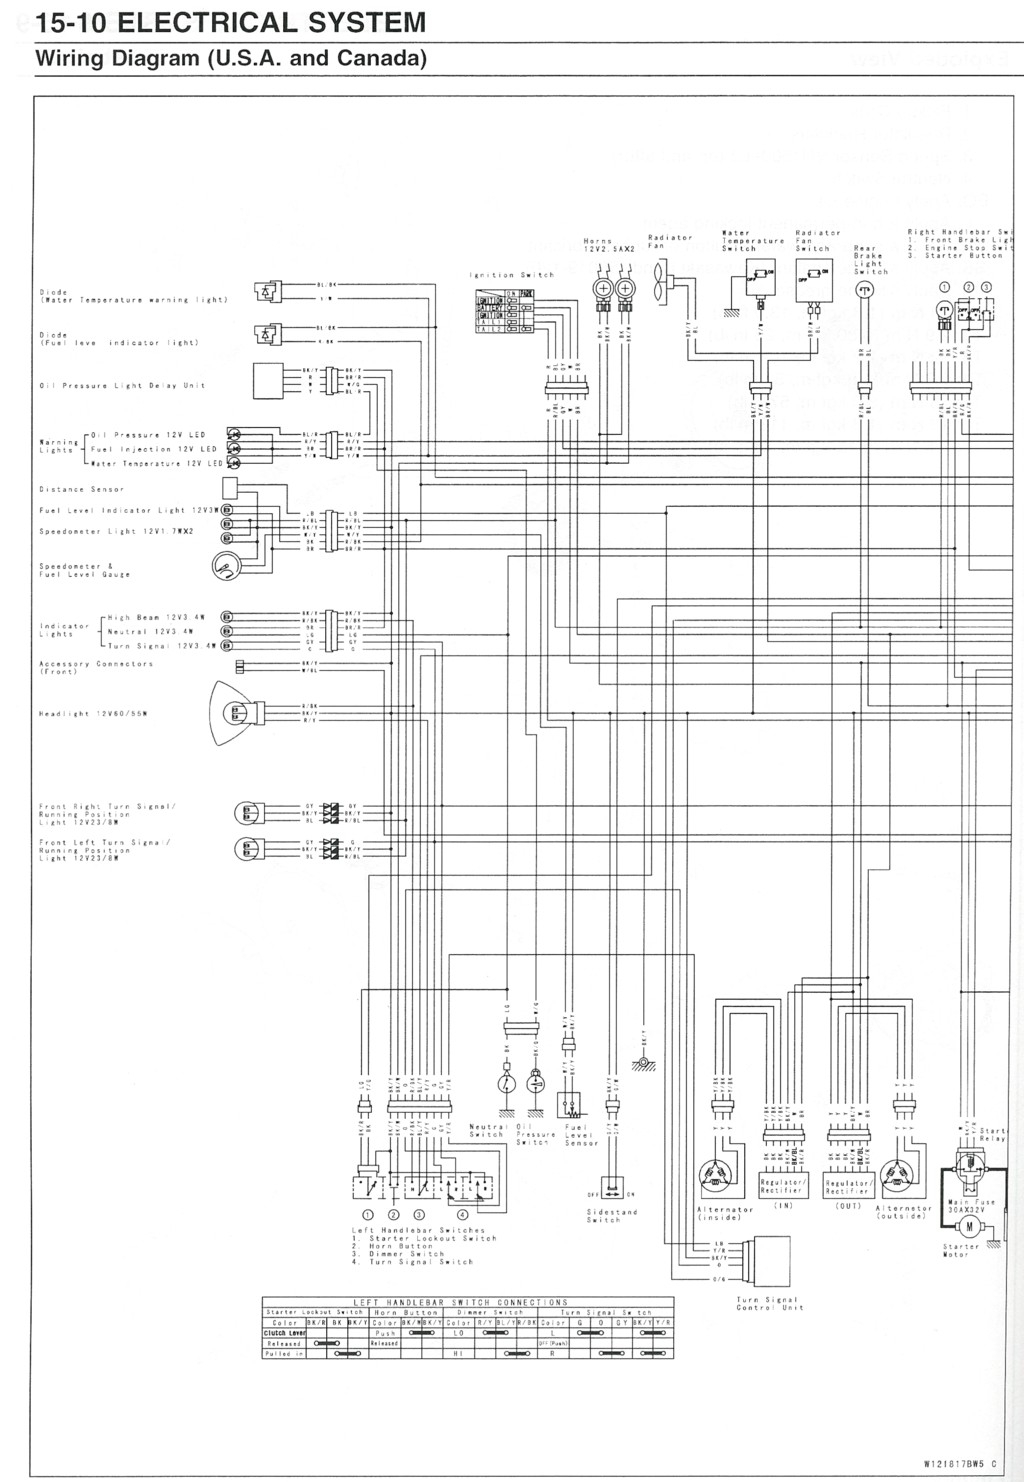 kawasaki vulcan 800 wiring diagram all wiring diagram Kawasaki Vulcan Parts Diagram